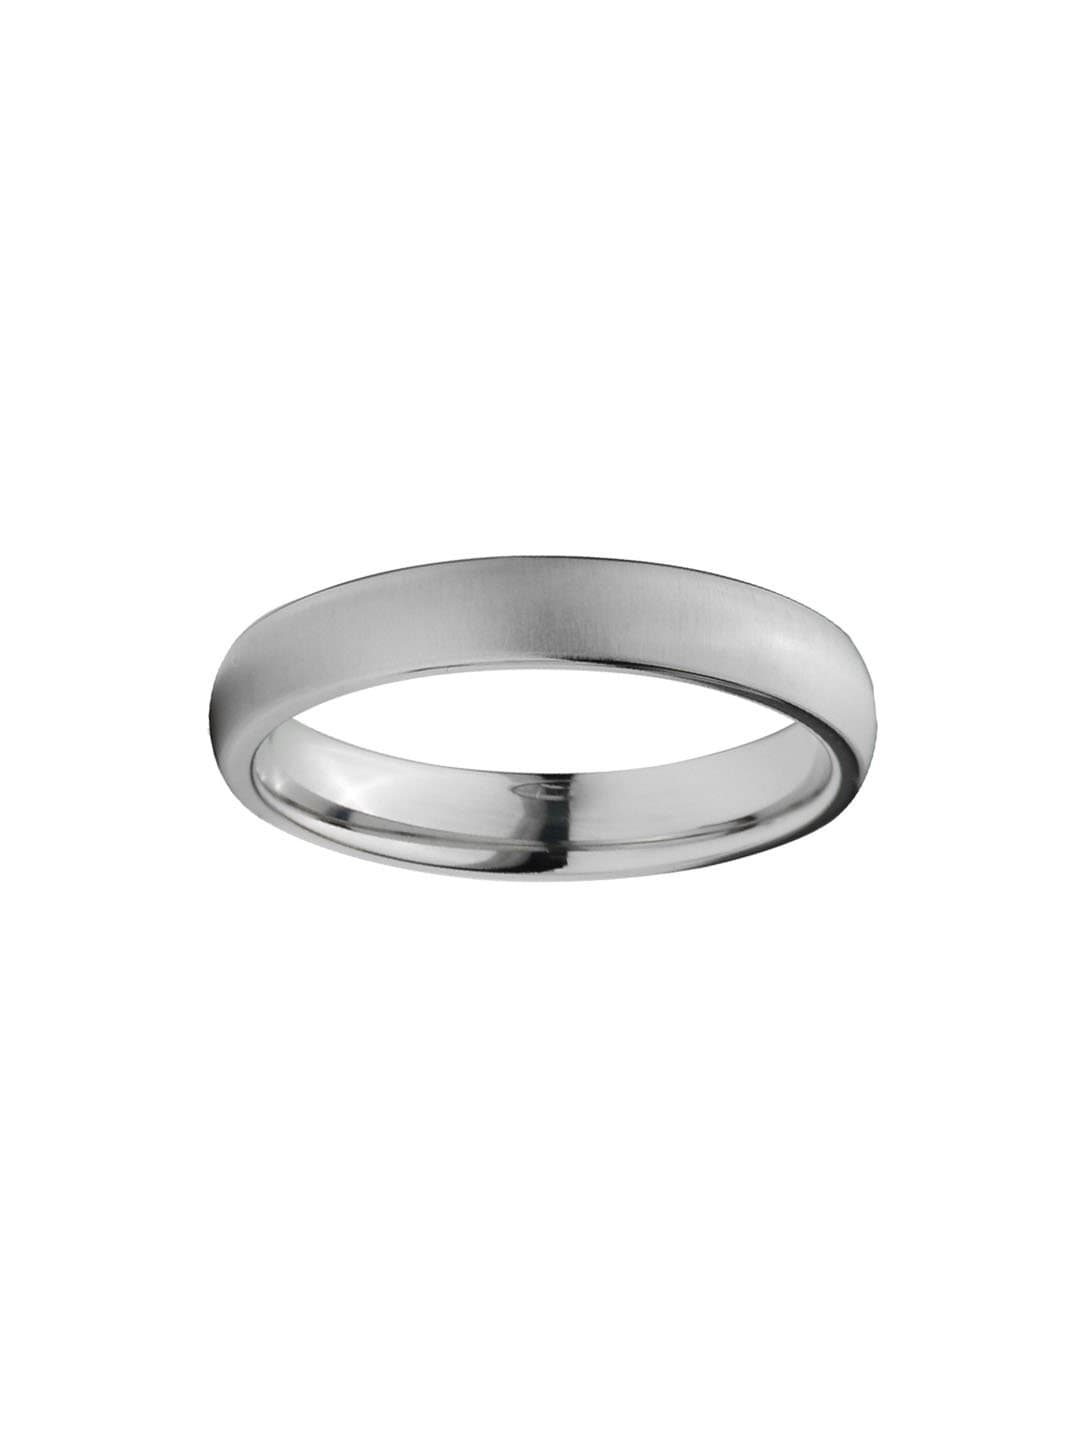 Silver Titanium Classic 4mm Matte Band Ring Rings